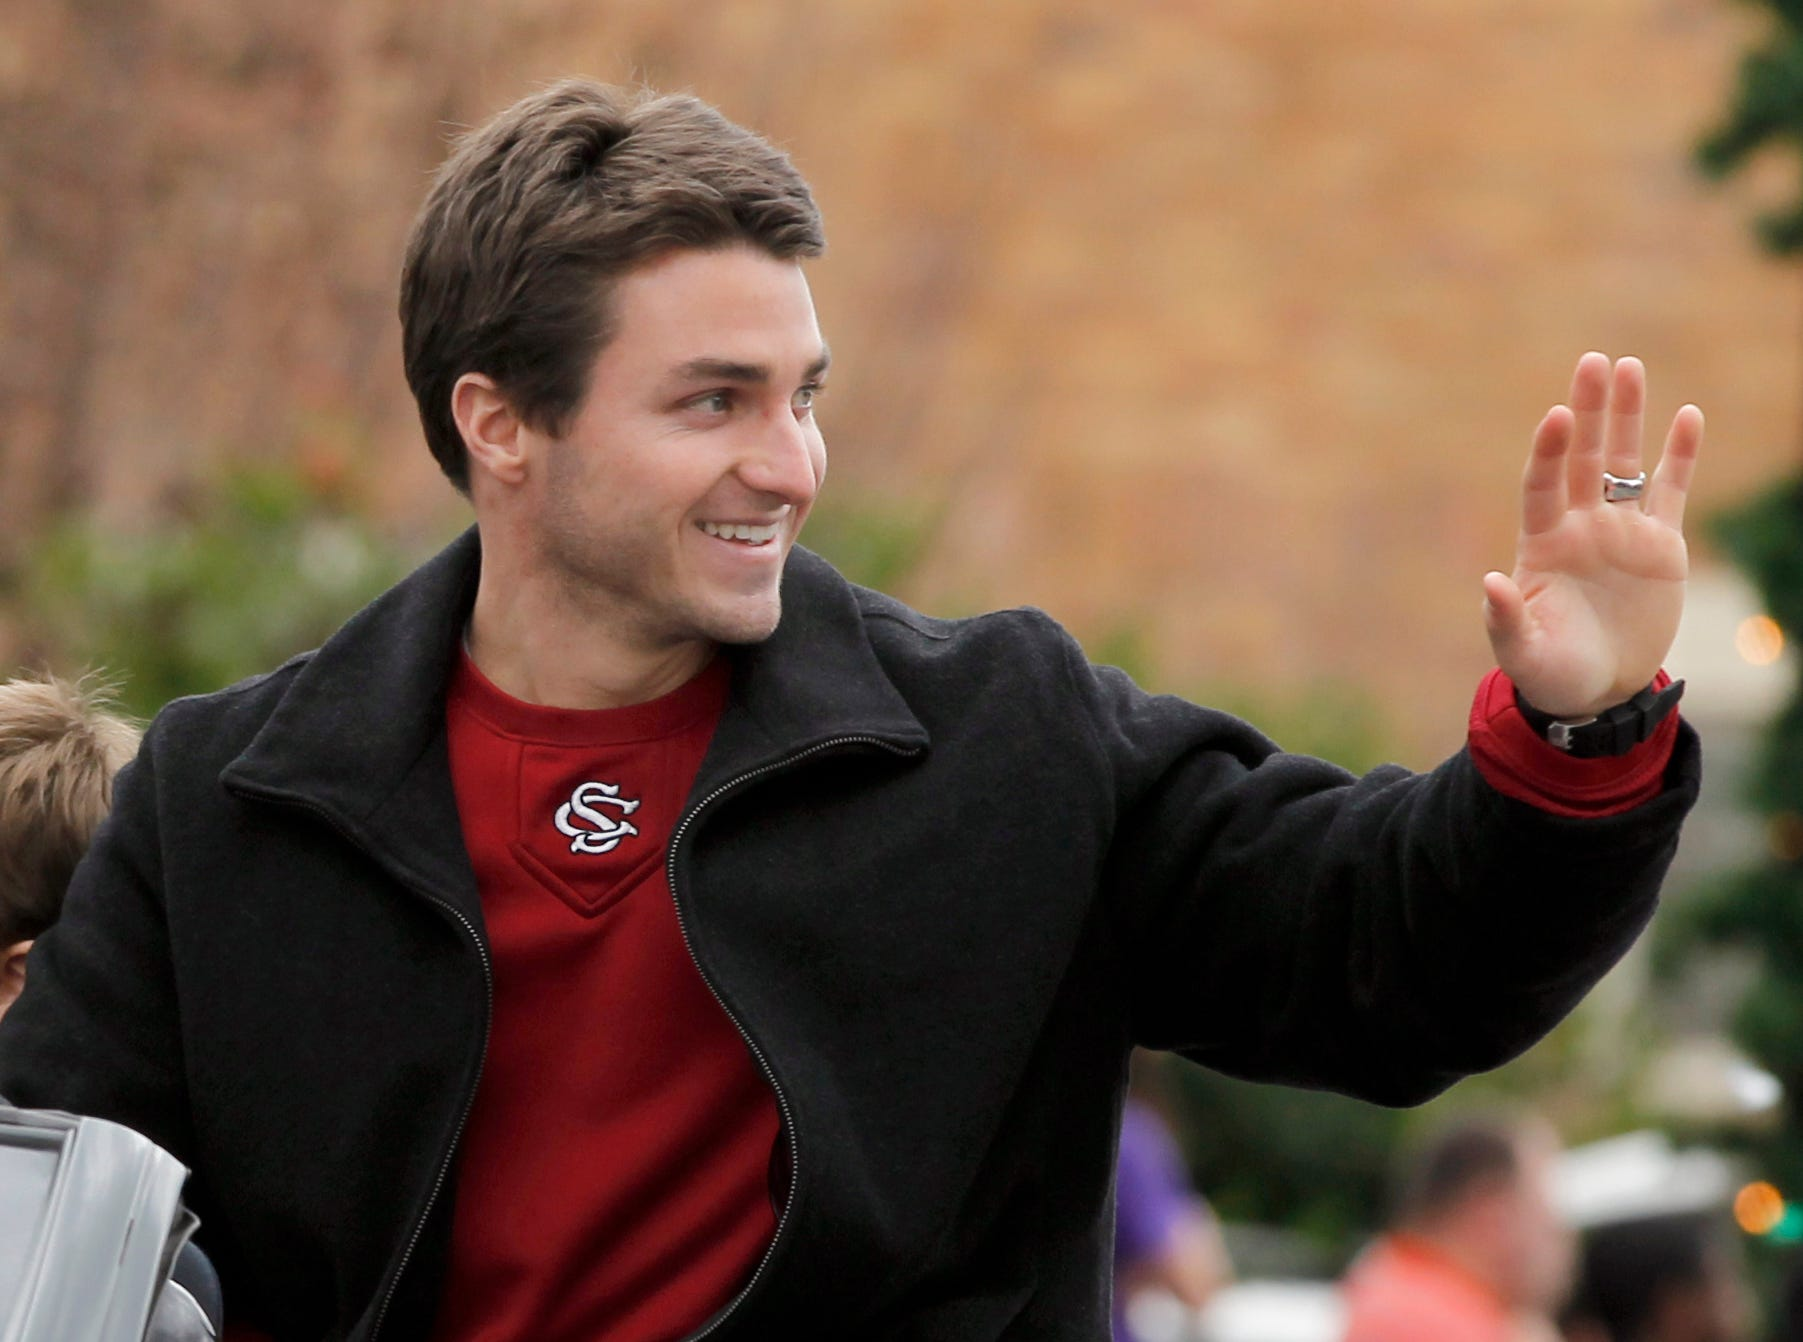 Parade Marshall Brady Thomas waves to the crowd during Sunday's Christmas parade in downtown Anderson in 2011. Thomas, an Anderson native, was a member of the University of South Carolina national champion baseball teams.